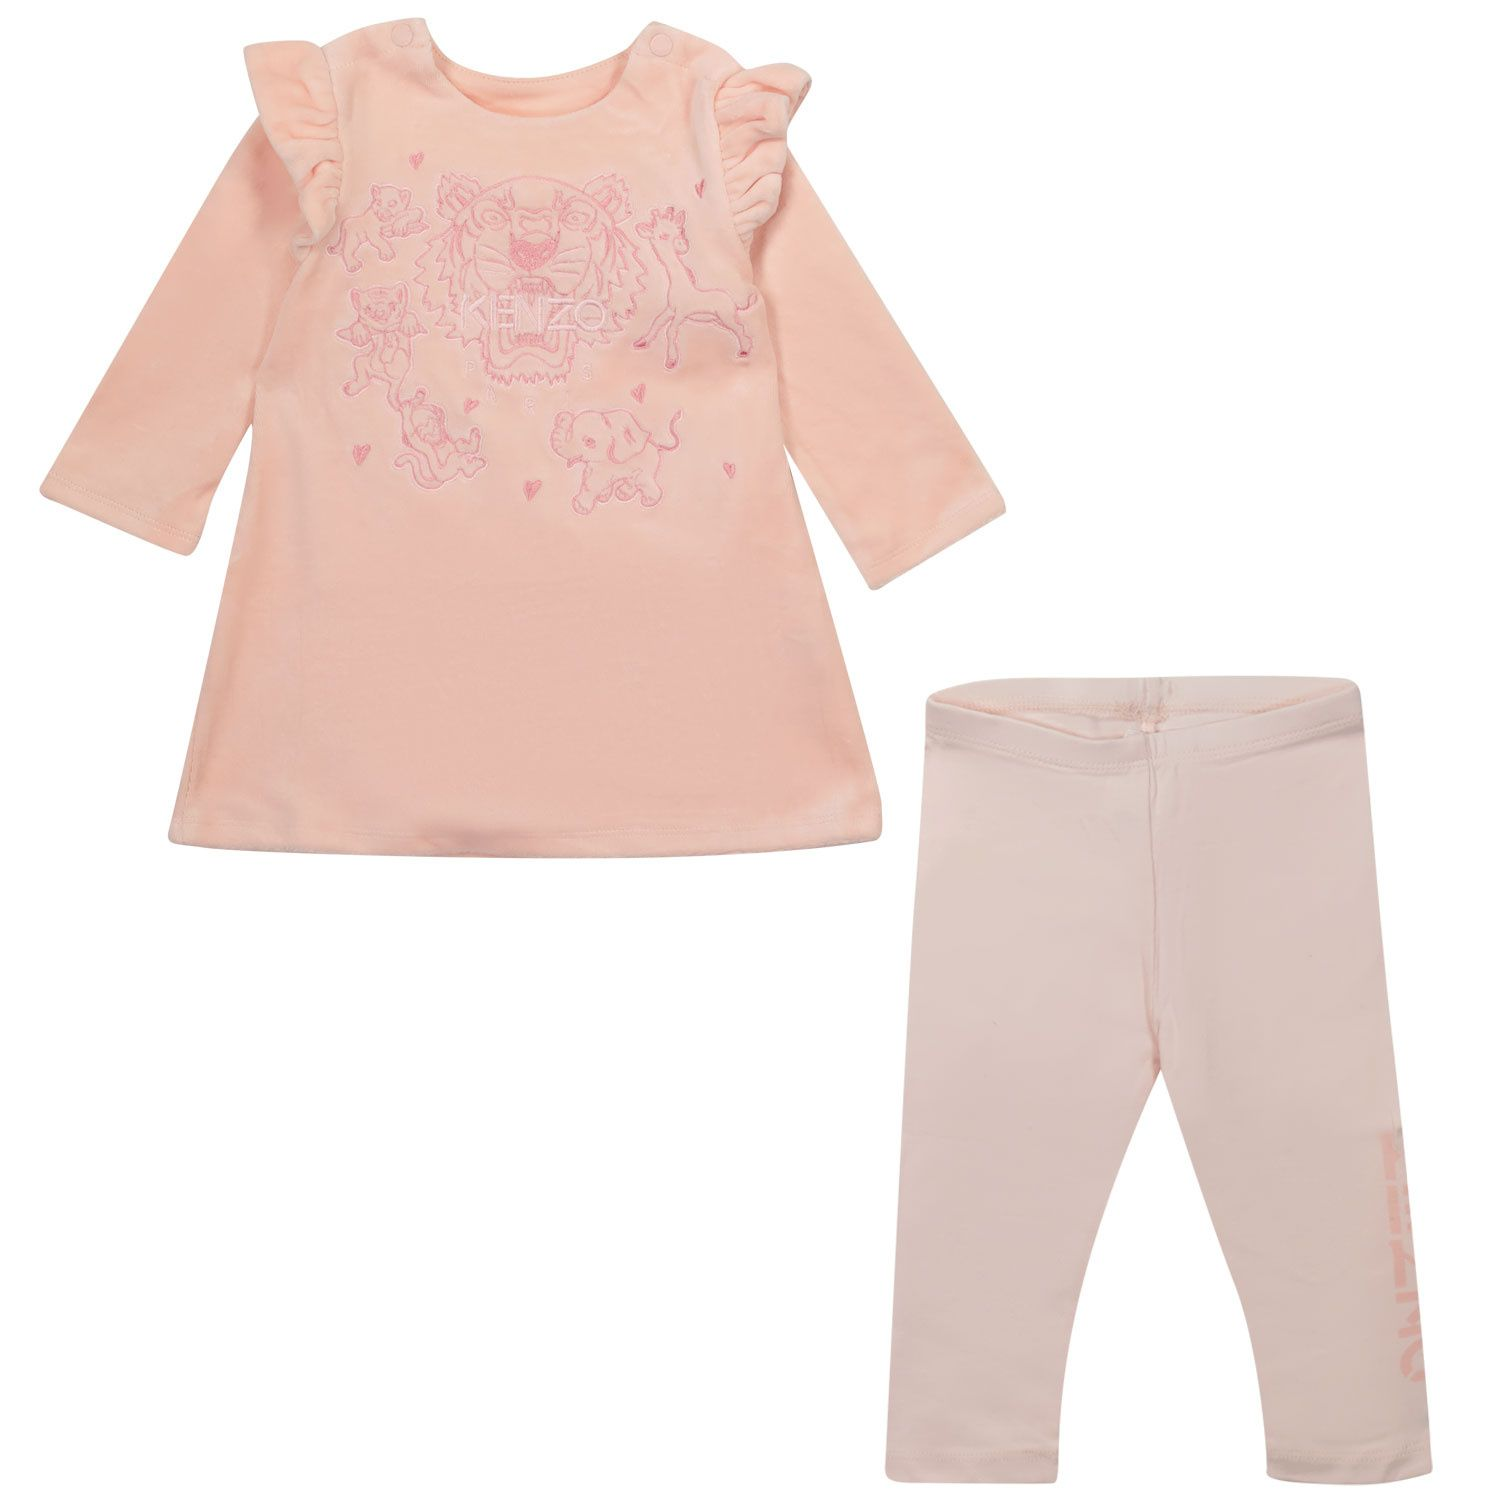 Picture of Kenzo K98011 baby set pink